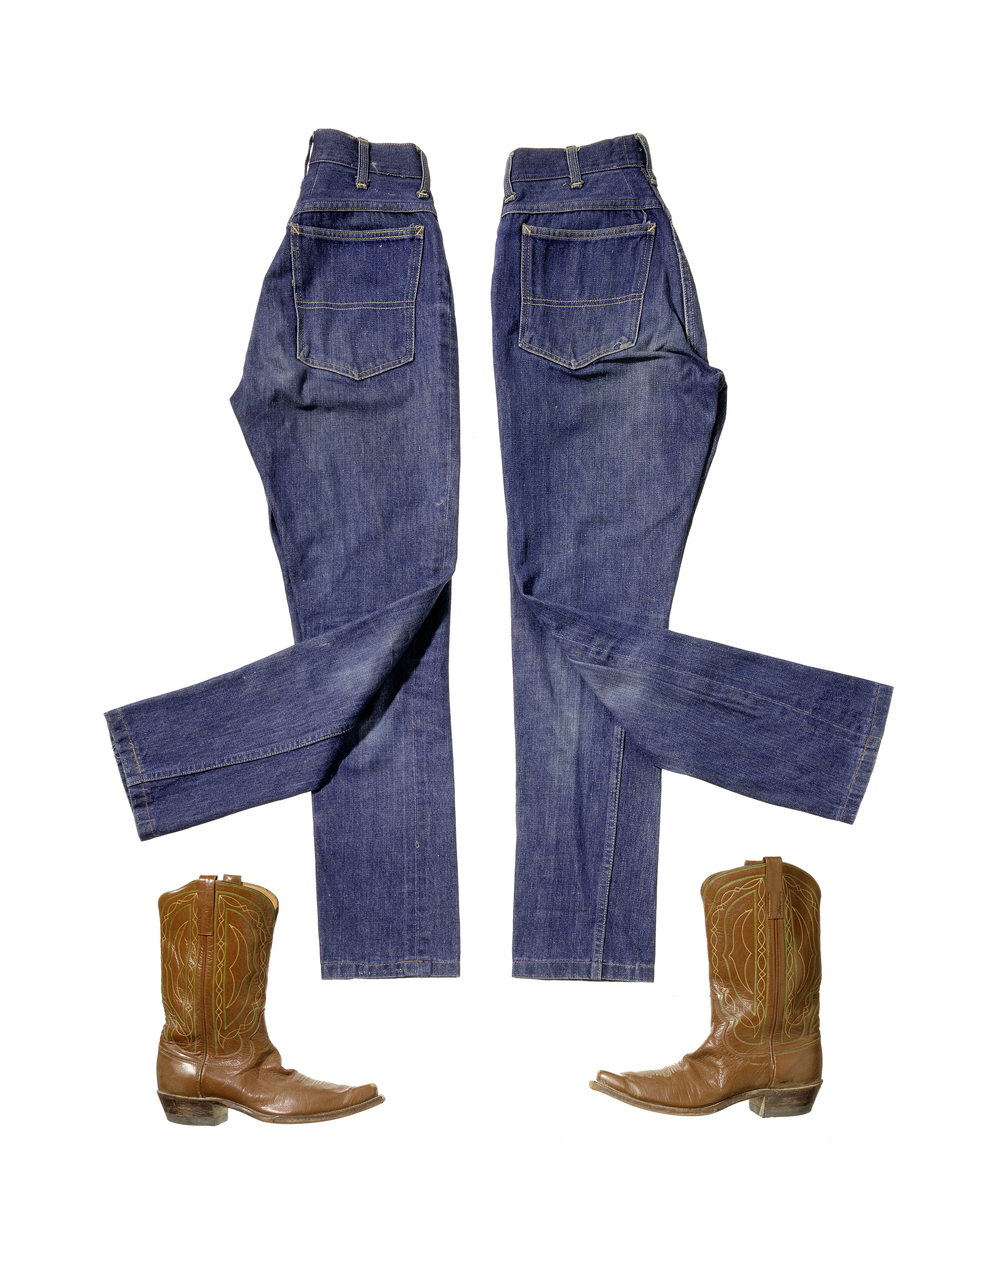 ch905-03_boots_jeans_resize.jpg